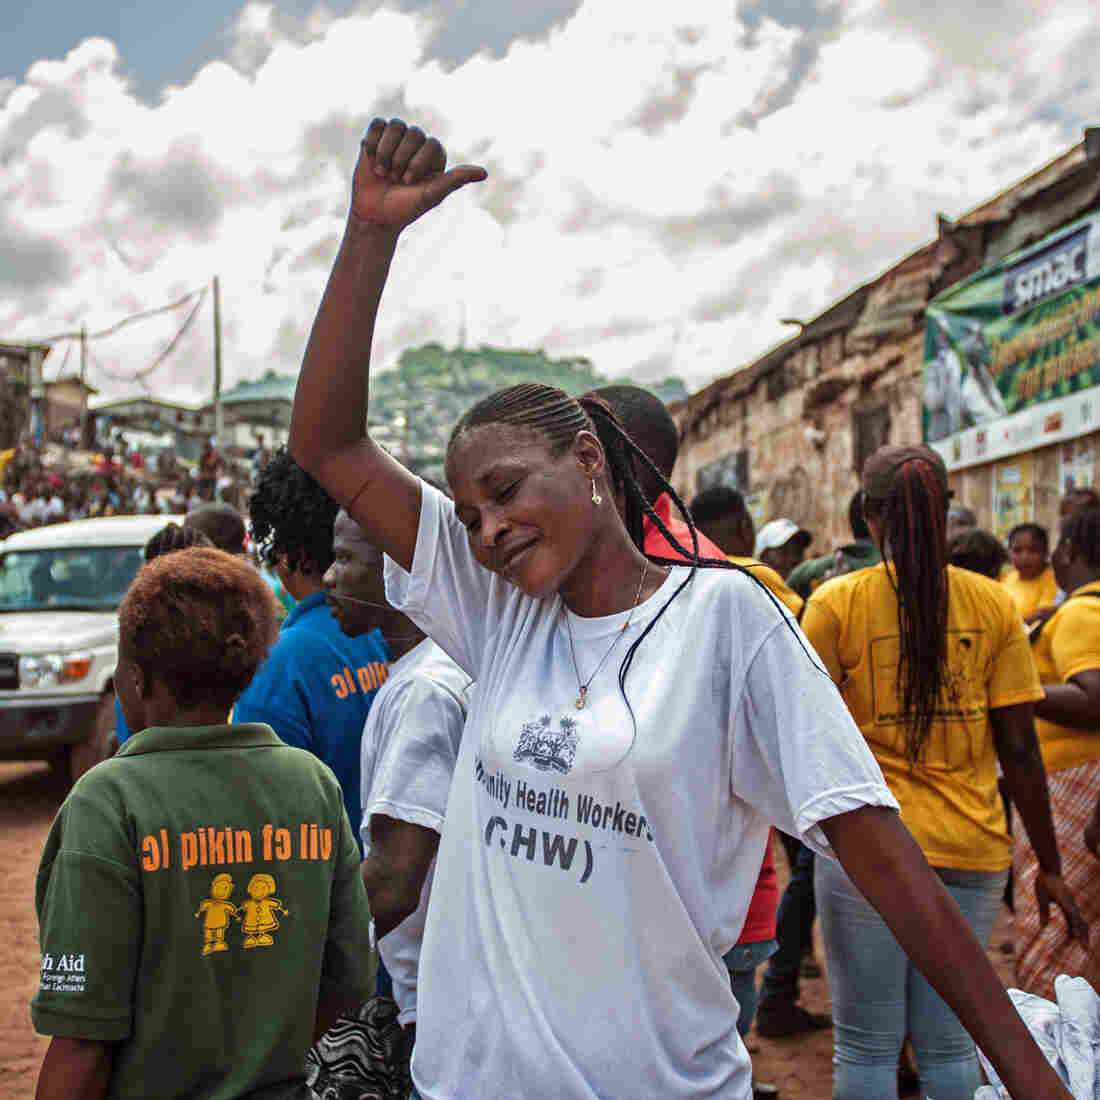 When a country is declared Ebola-free — like Sierra Leone last November — the mood is upbeat. But that doesn't mean the virus is vanquished, as Sierra Leone learned this month.